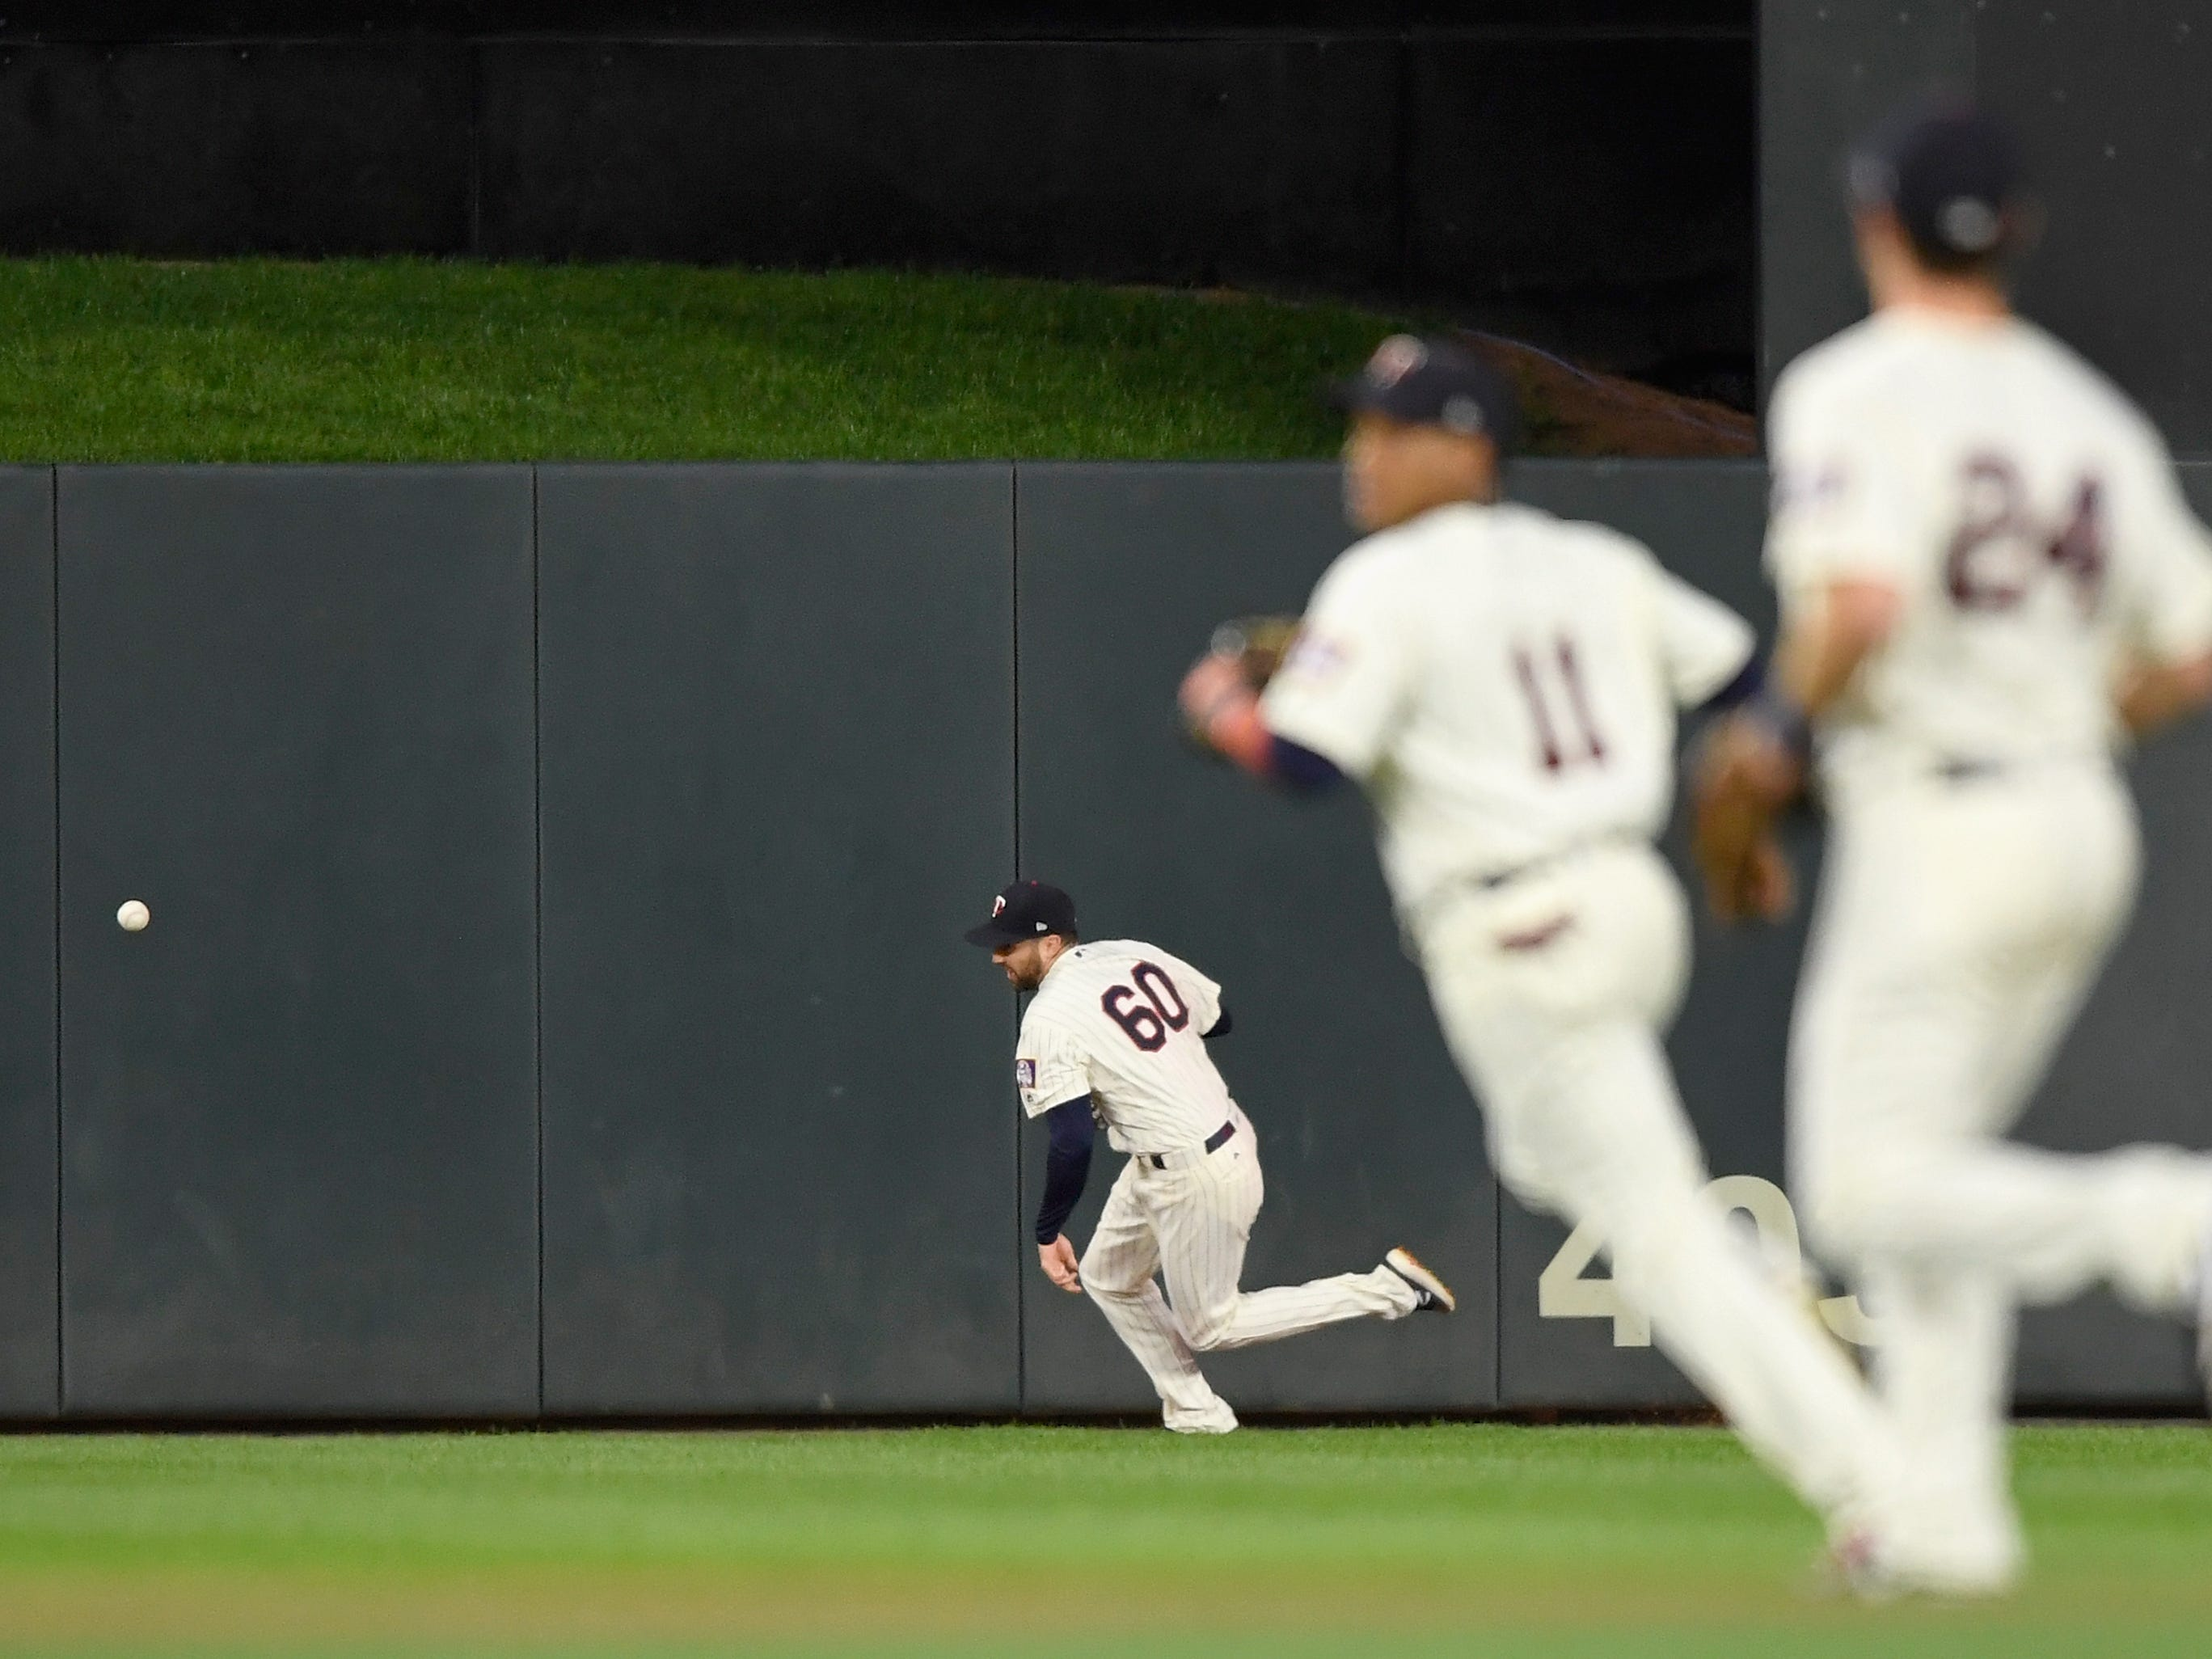 Jake Cave #60 of the Minnesota Twins runs after an RBI triple hit by Christin Stewart #14 of the Detroit Tigers during the first inning of the game on September 26, 2018 at Target Field in Minneapolis, Minnesota.